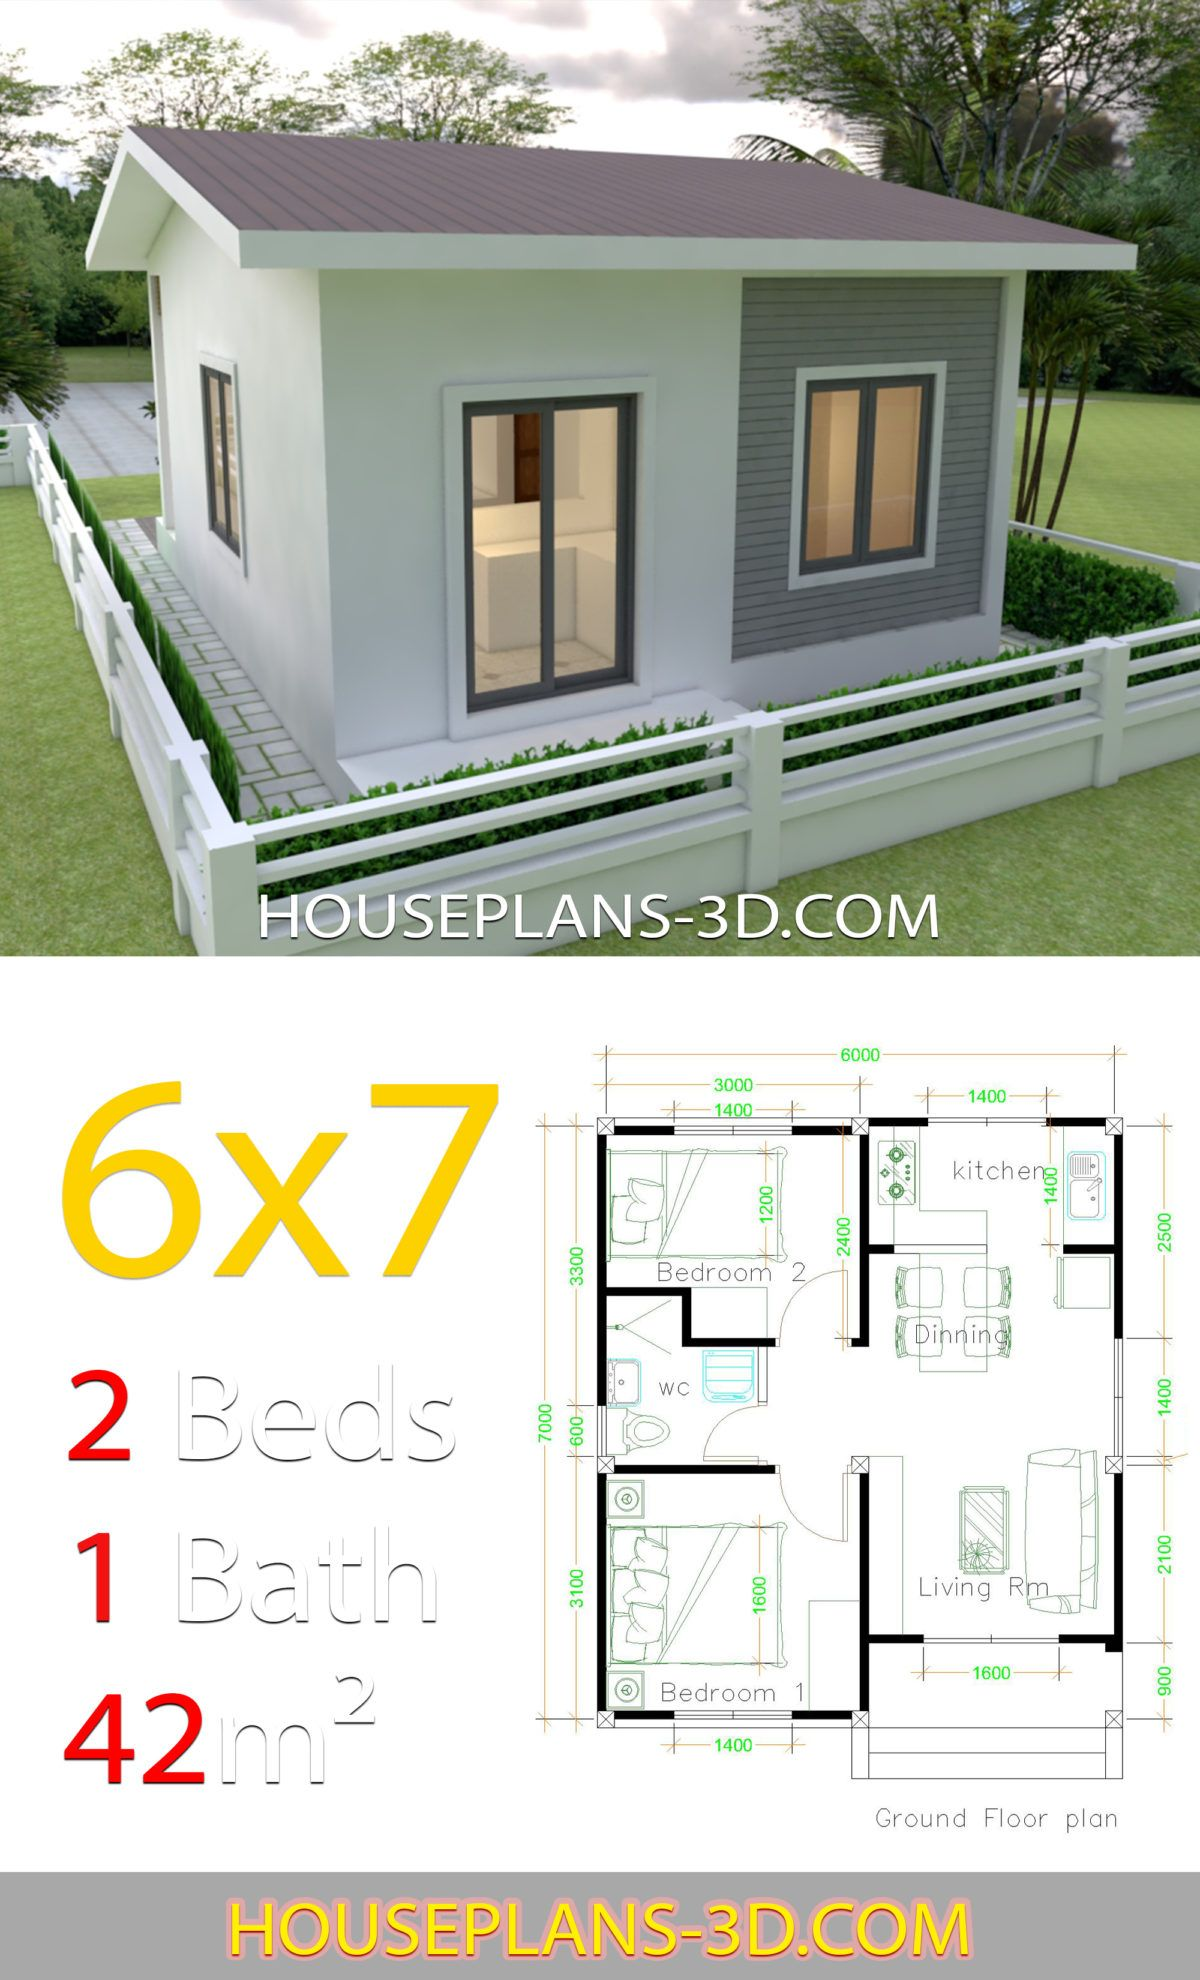 House Design 6x7 With 2 Bedrooms House Plans 3d In 2020 Small House Architecture Tiny House Design Small House Design